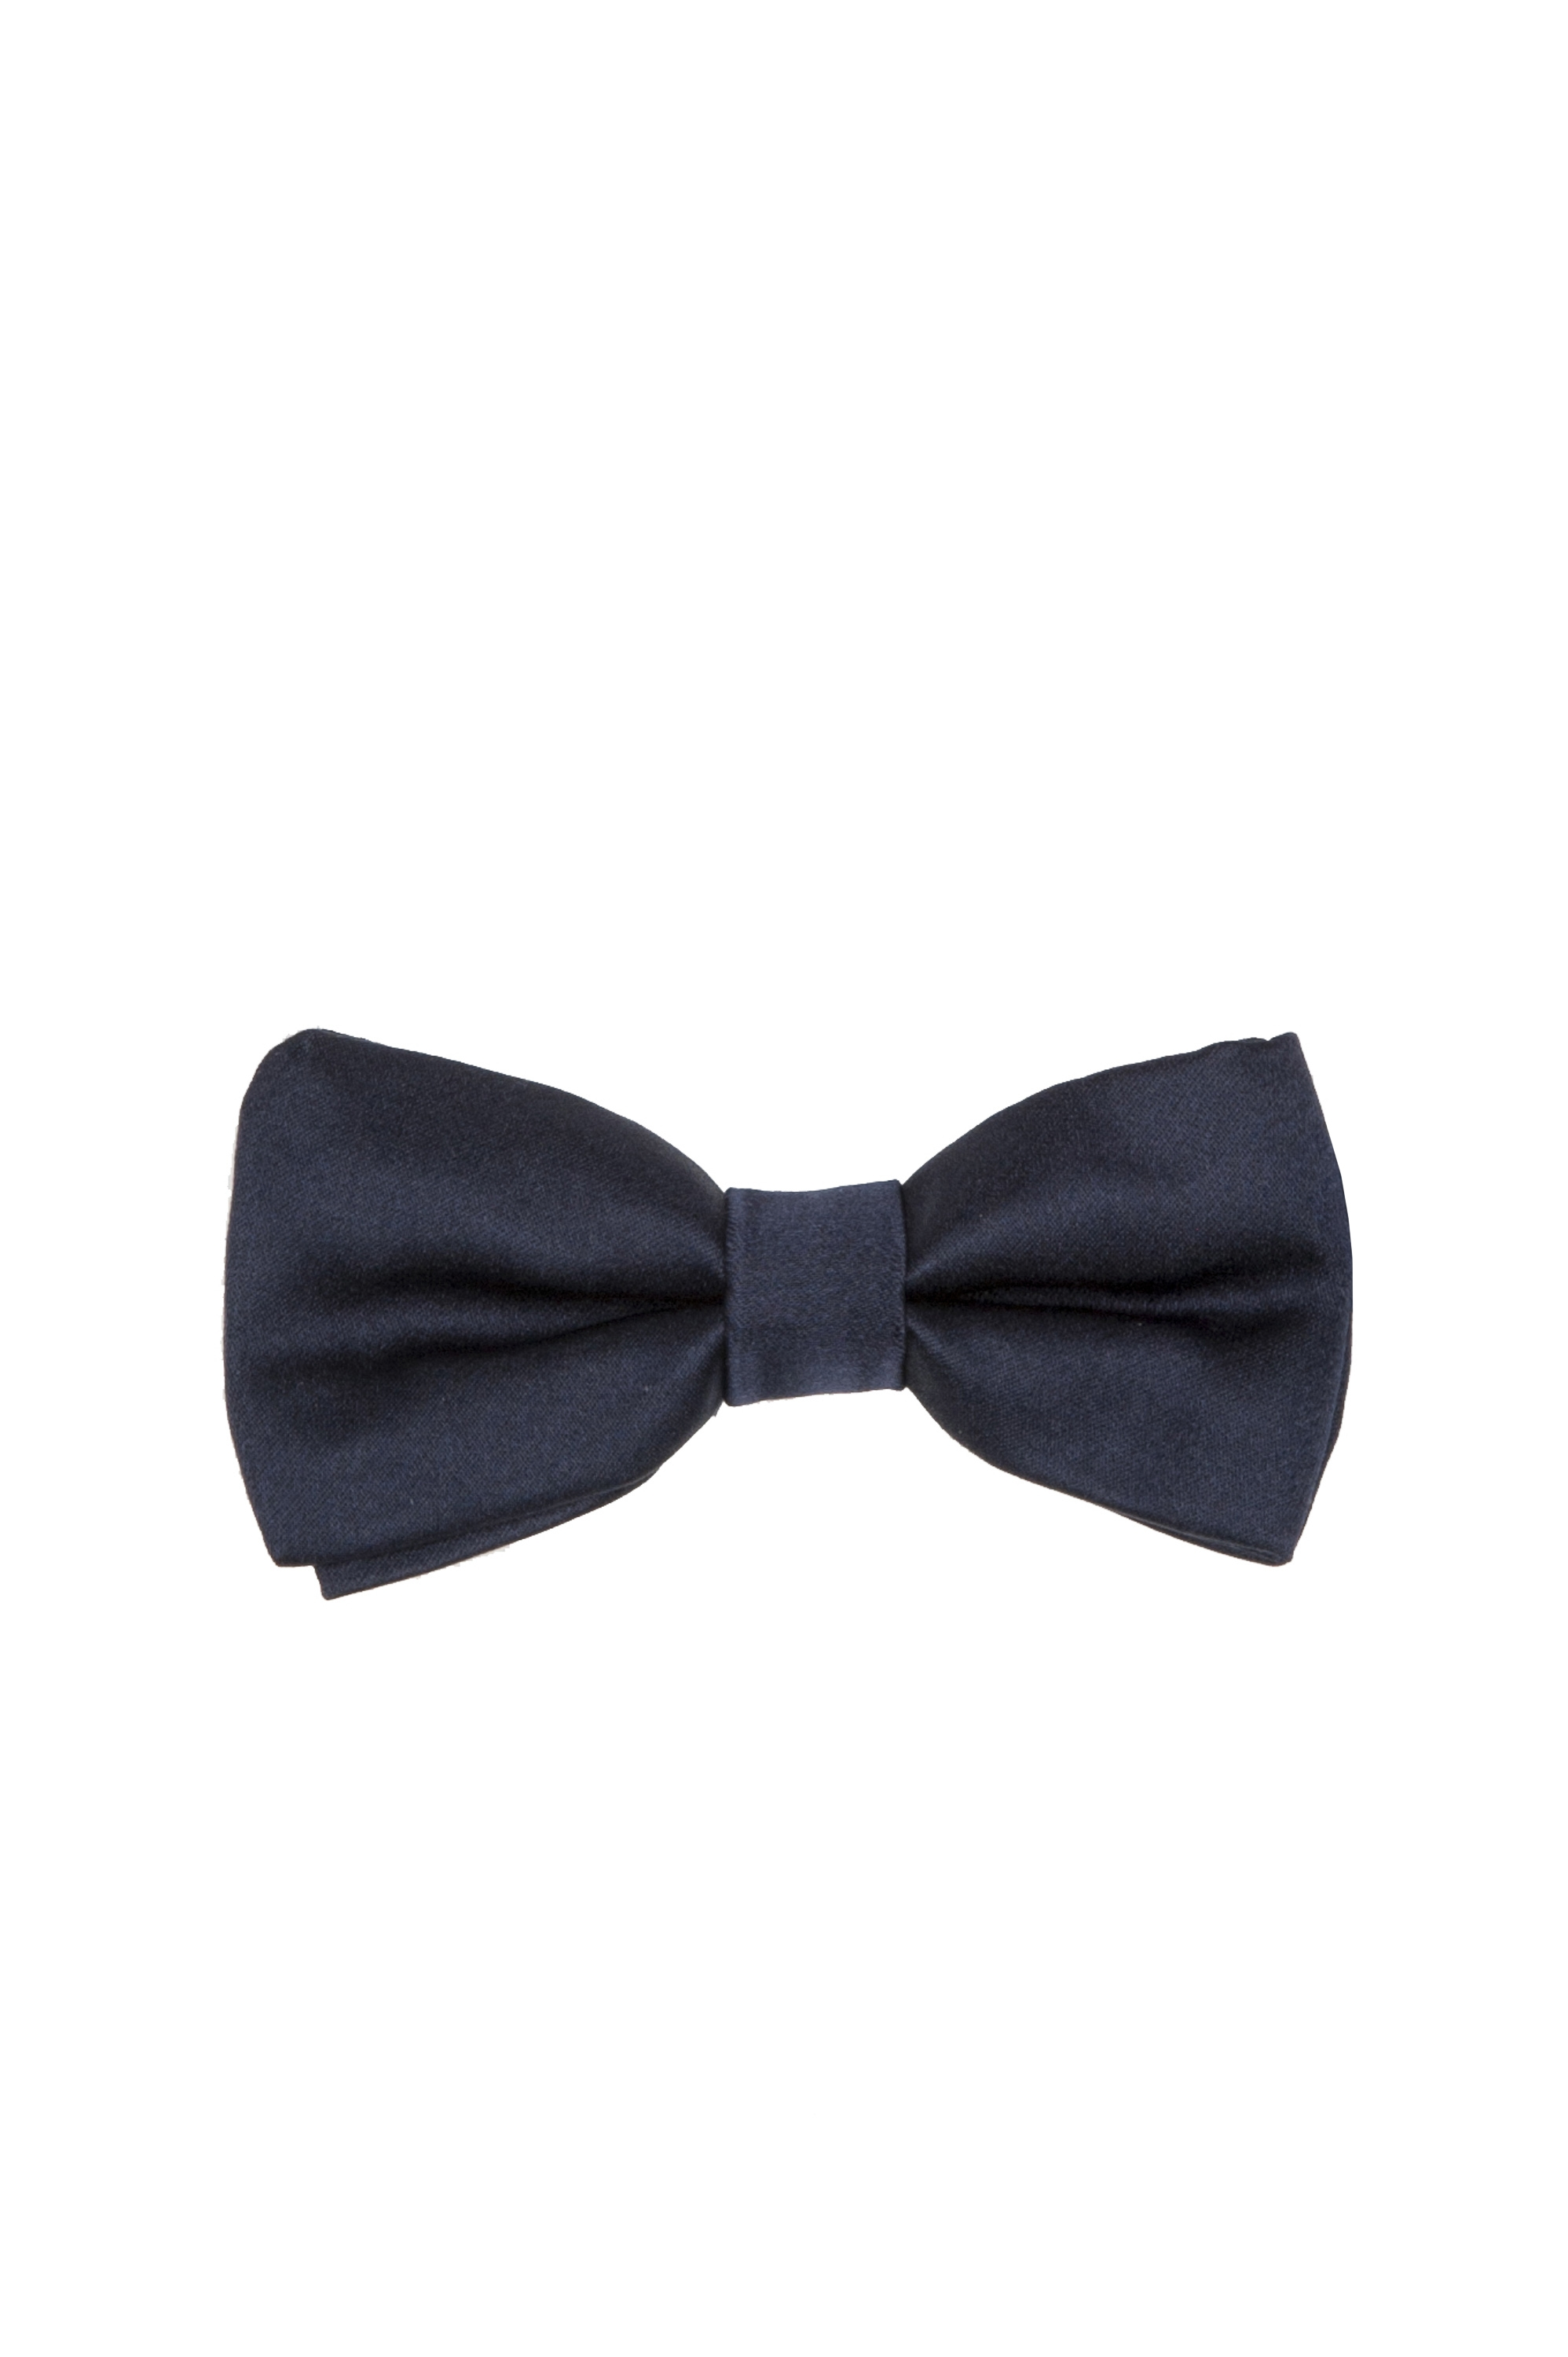 SBU 01032 Classic ready-tied bow tie in blue silk satin 01